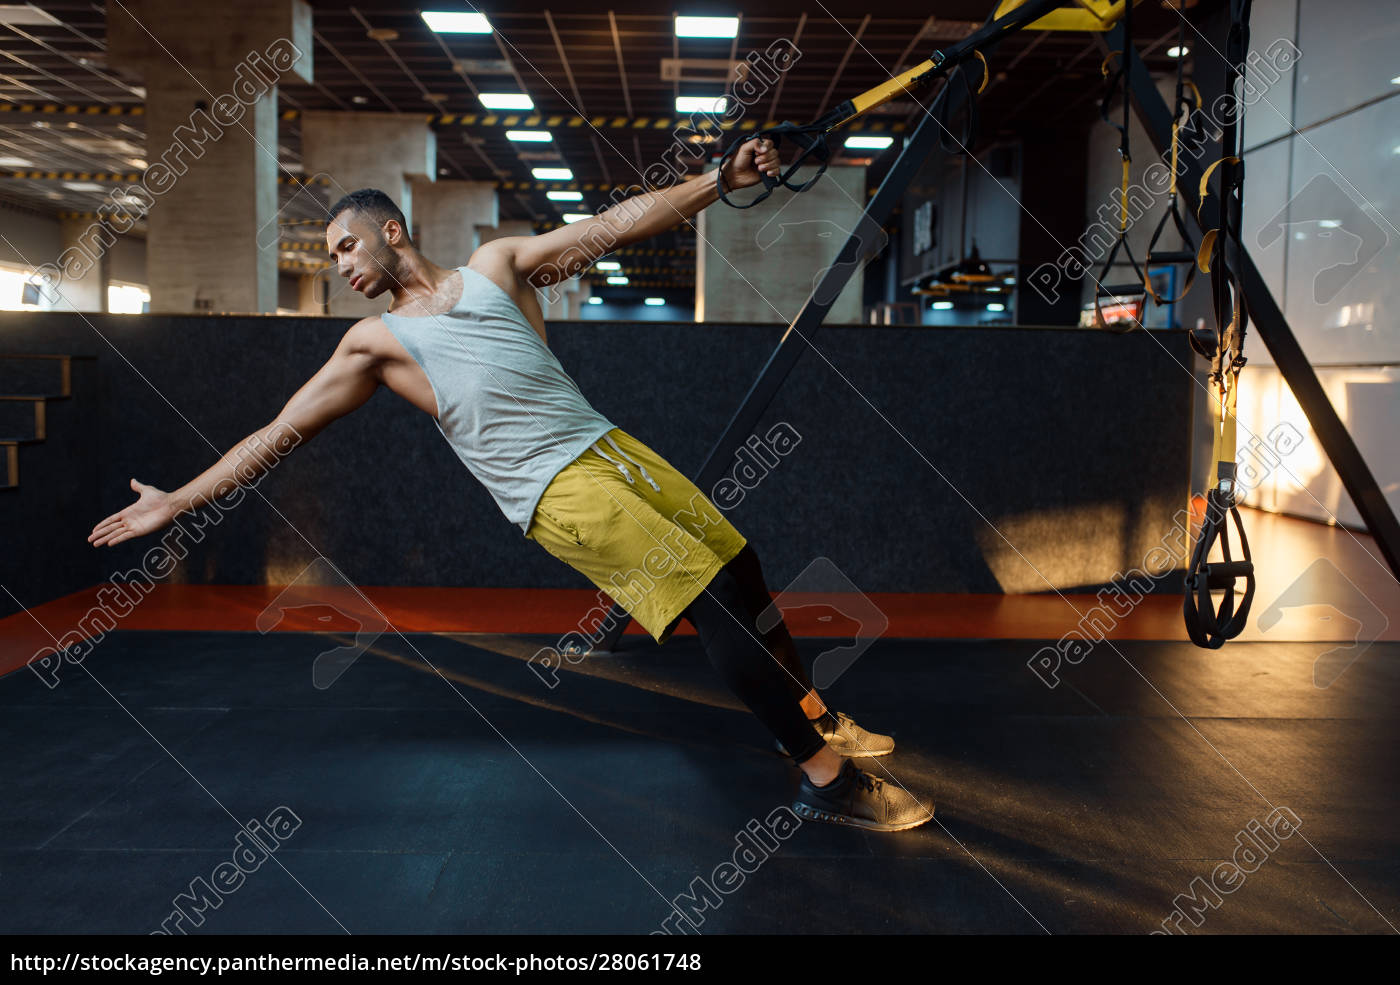 muscular, athlete, at, stretching, exercise, machine - 28061748